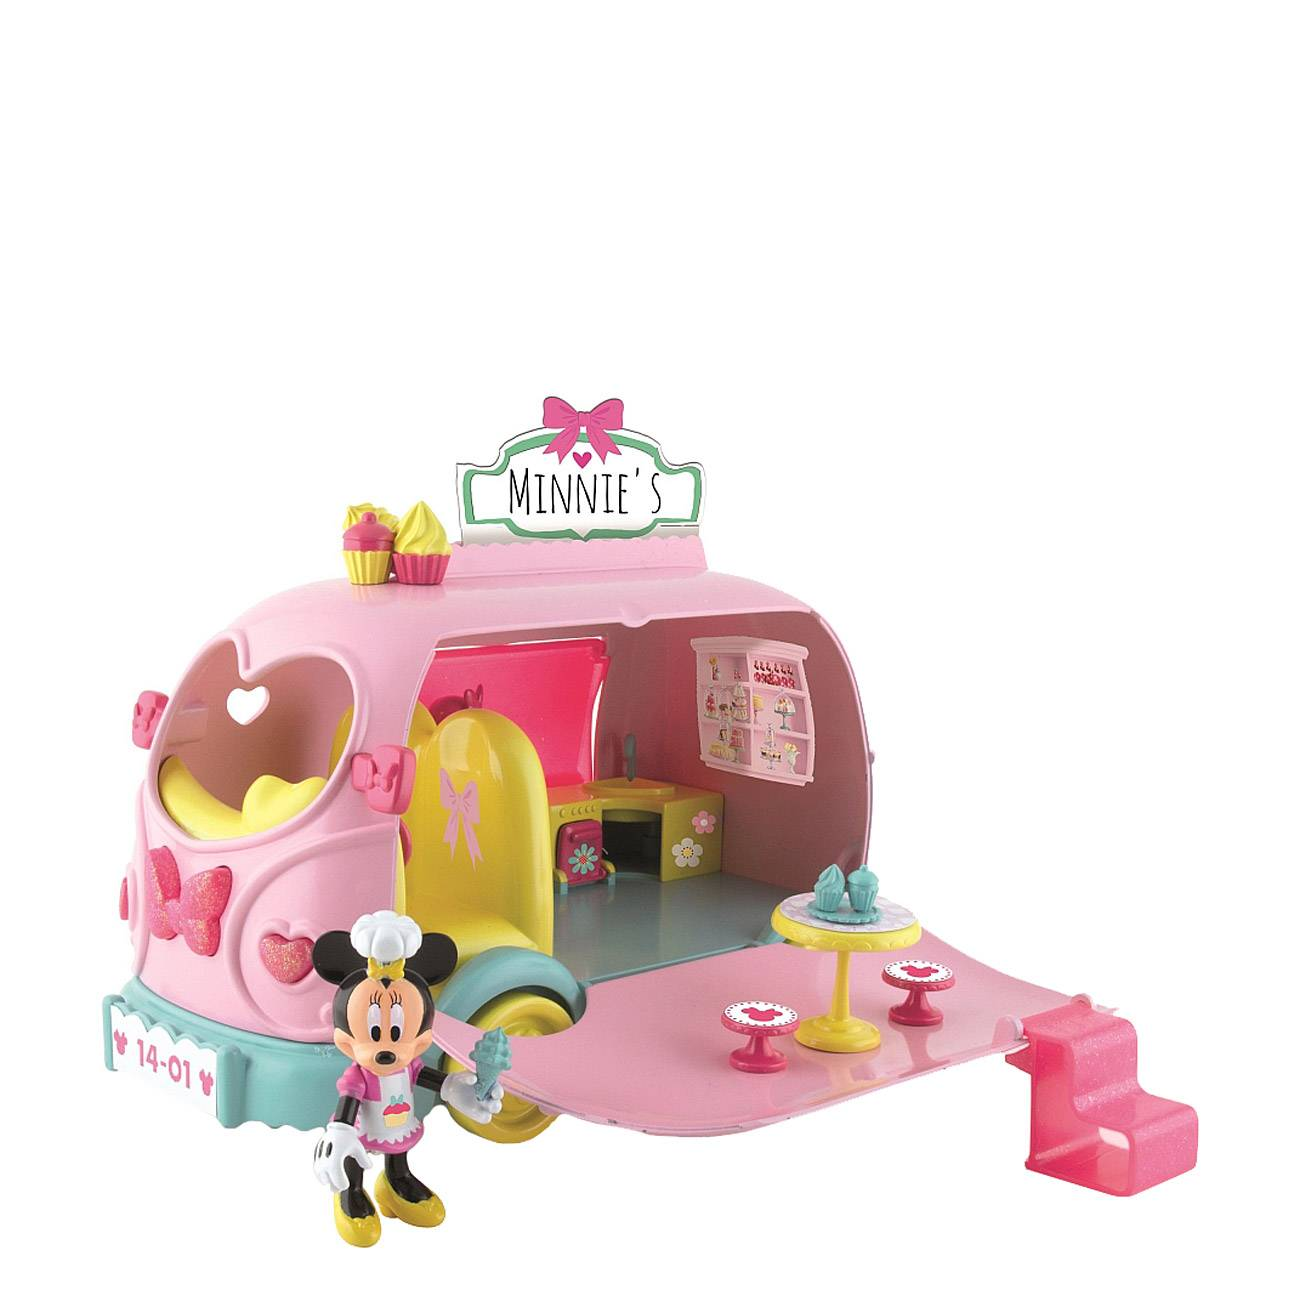 MINNIE MOUSE SWEETS & CANDIES VAN